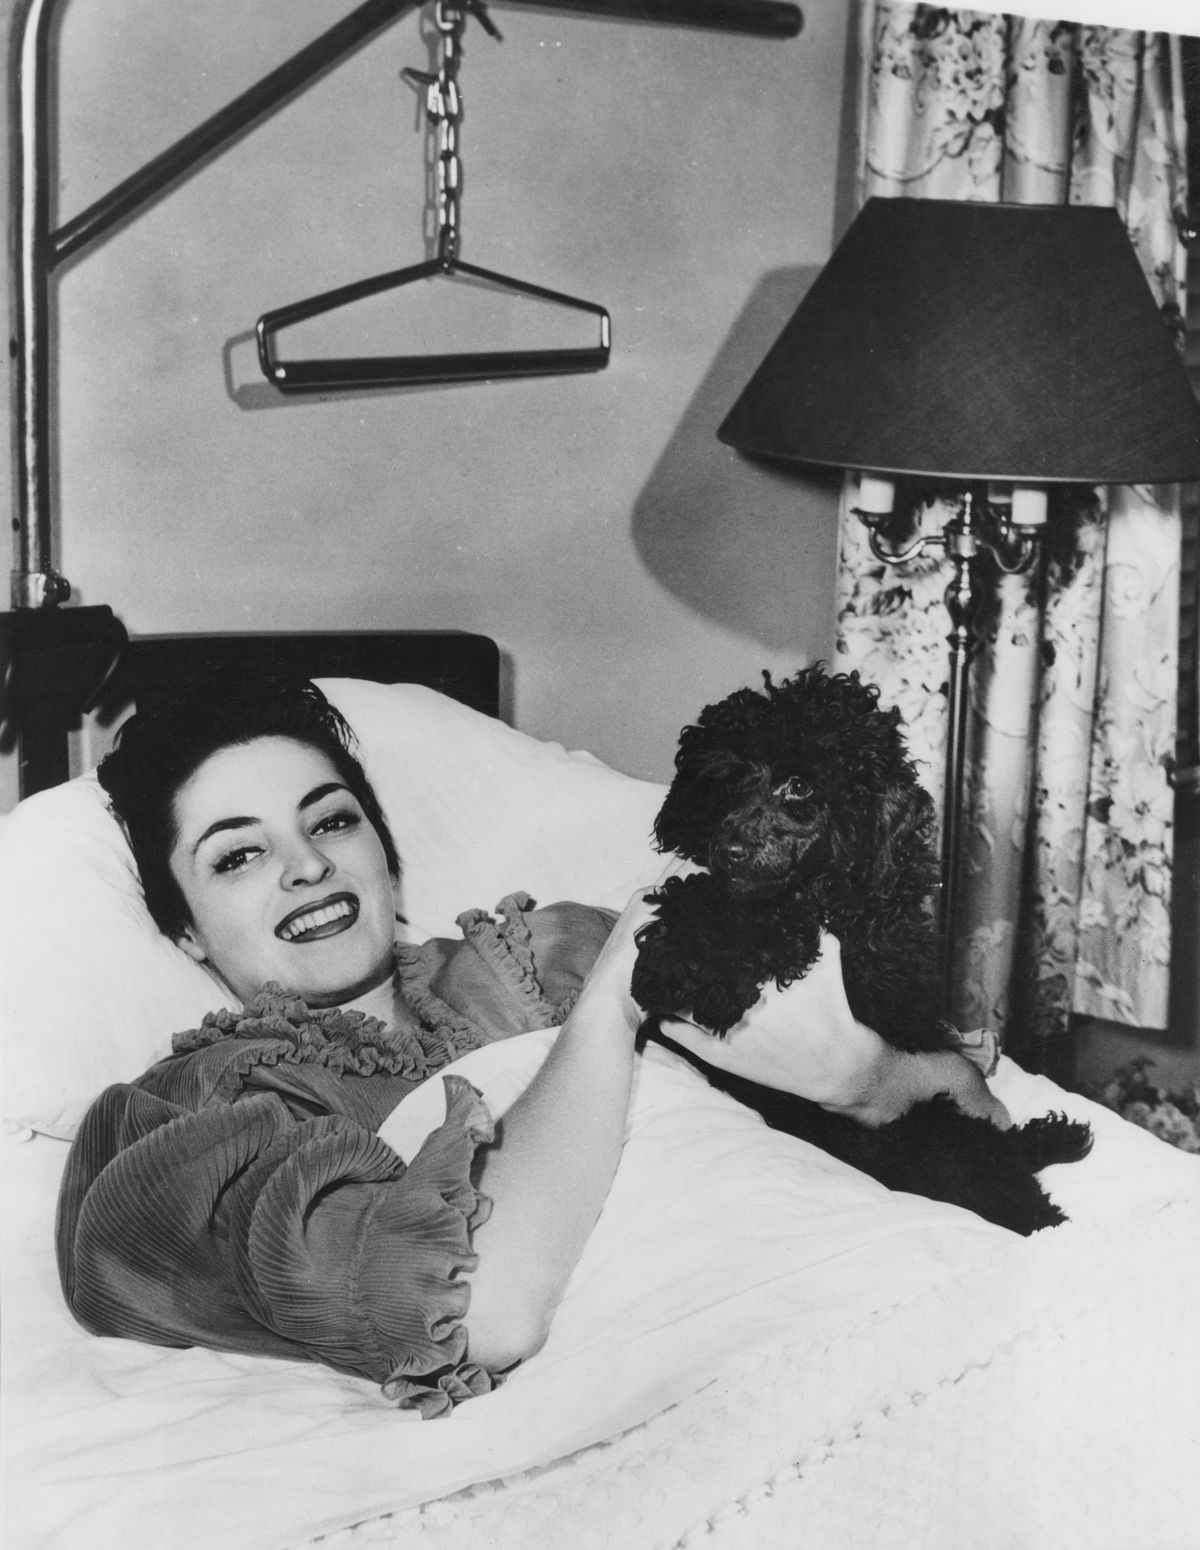 Suzan Ball recovers in hospital after having her leg amputated, in 1954 in Hollywood, California | Photo: Keystone/Hulton Archive/Getty Images